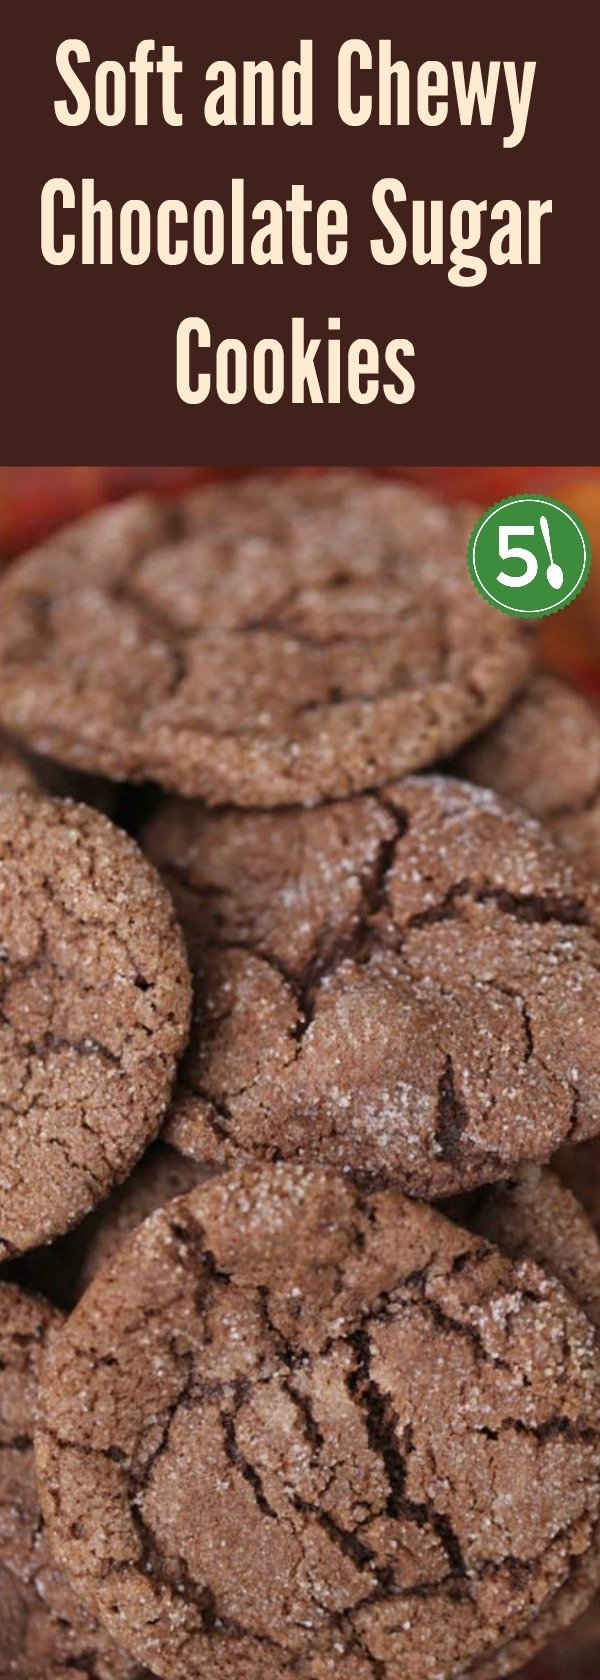 Easy recipe for soft and chewy chocolate sugar cookies that are easy to whip up with ingredients that you most likely already have in your cupboard.